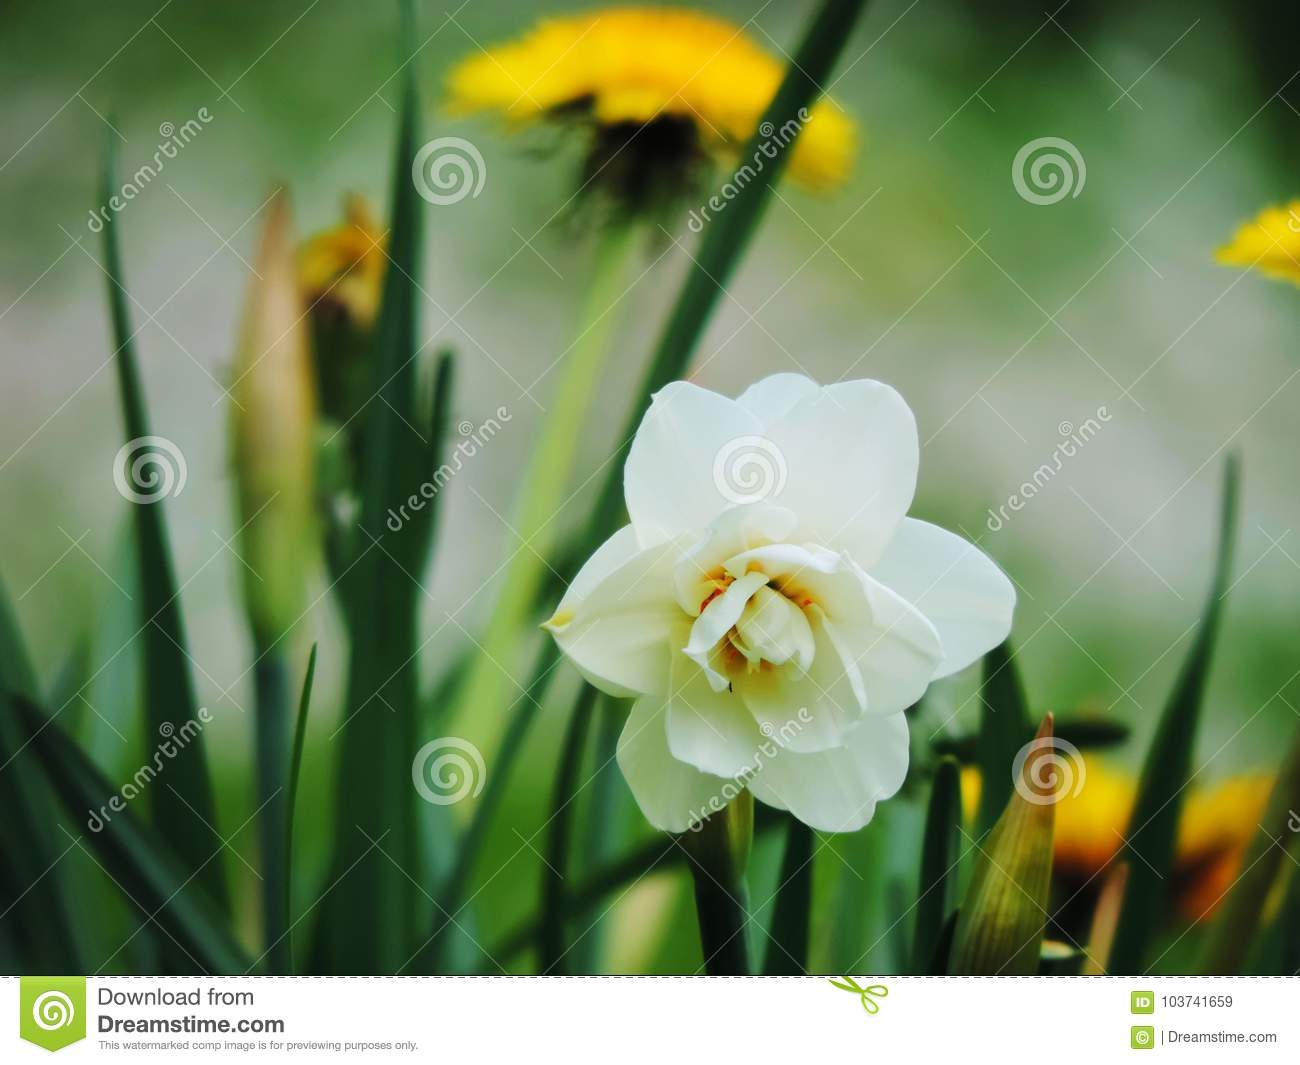 White daffodil narcissus and dandelion flowers